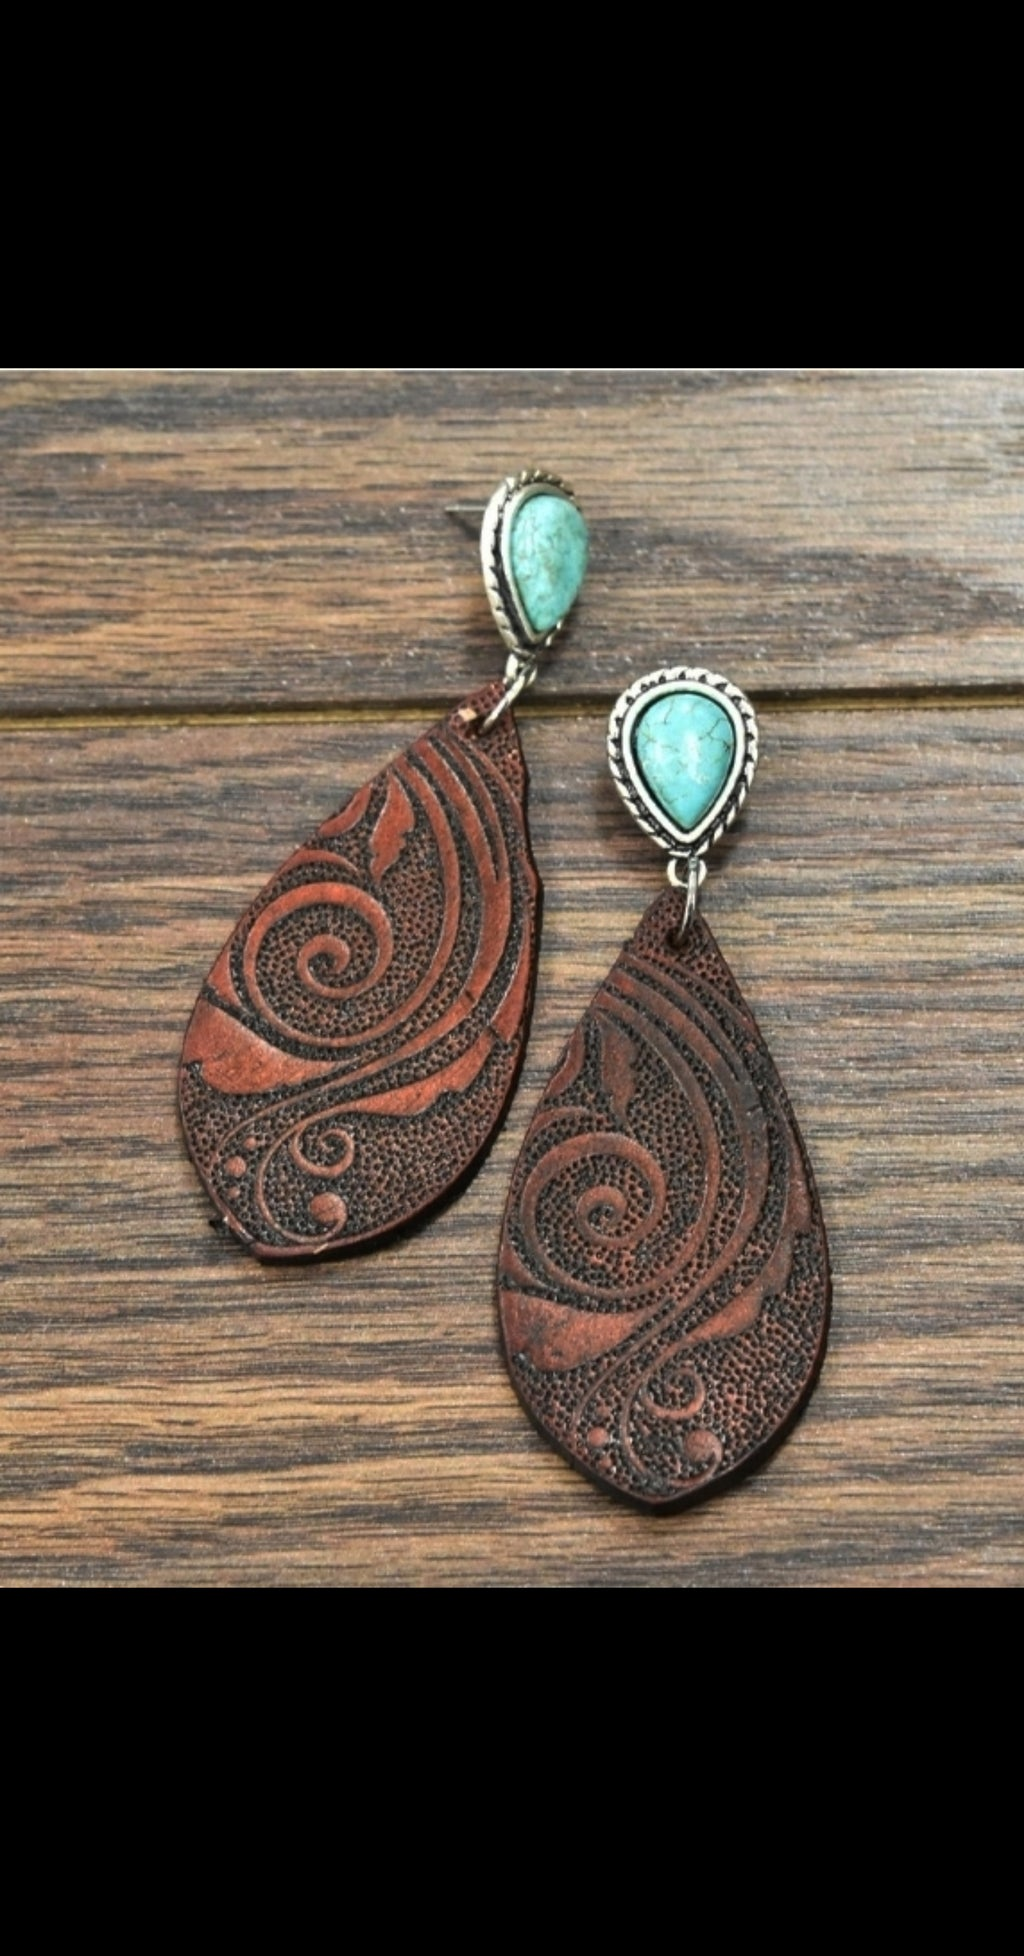 Timber Trail Tooled Leather Turquoise Earrings